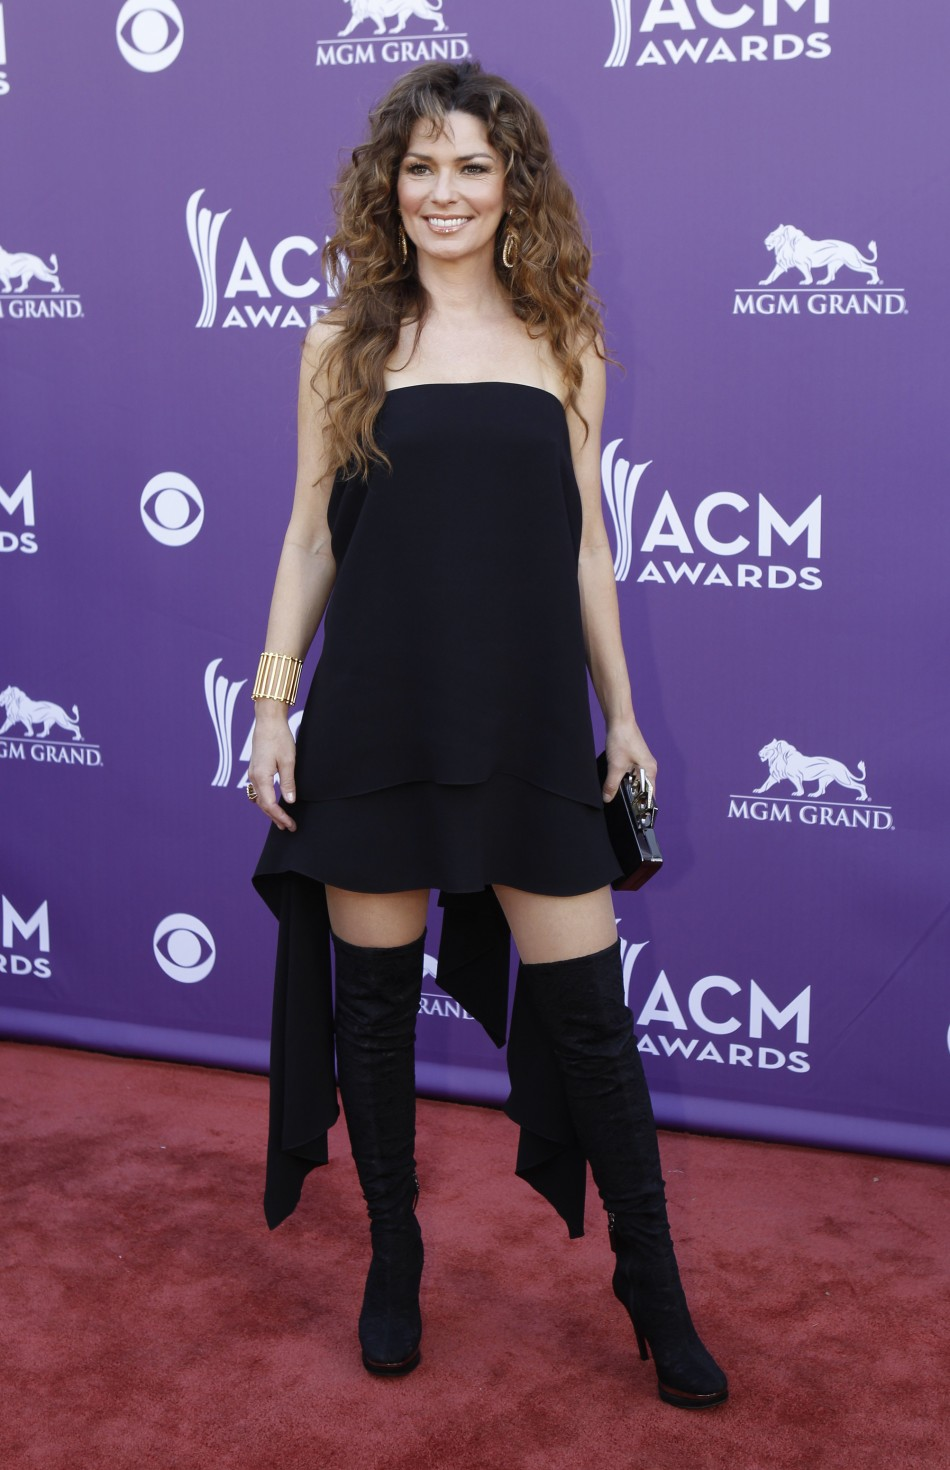 Singer Shania Twain arrives at the 48th ACM Awards in Las Vegas, April 7, 2013.